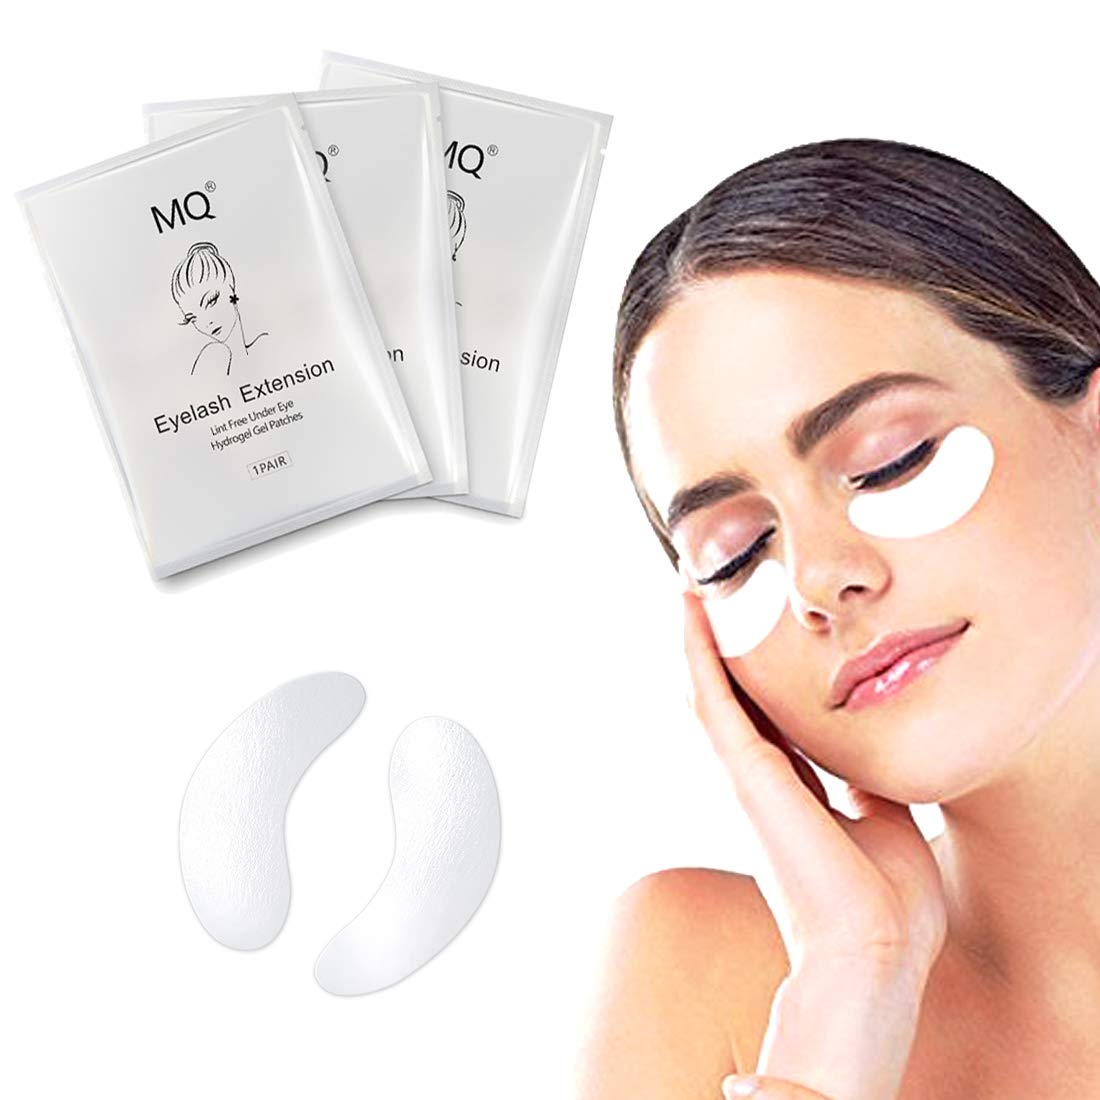 50/100/300 Pairs Lint Free Under Eye Gel Patches for Eyelash Extension Eye Mask Beauty Tool (300 Pairs)